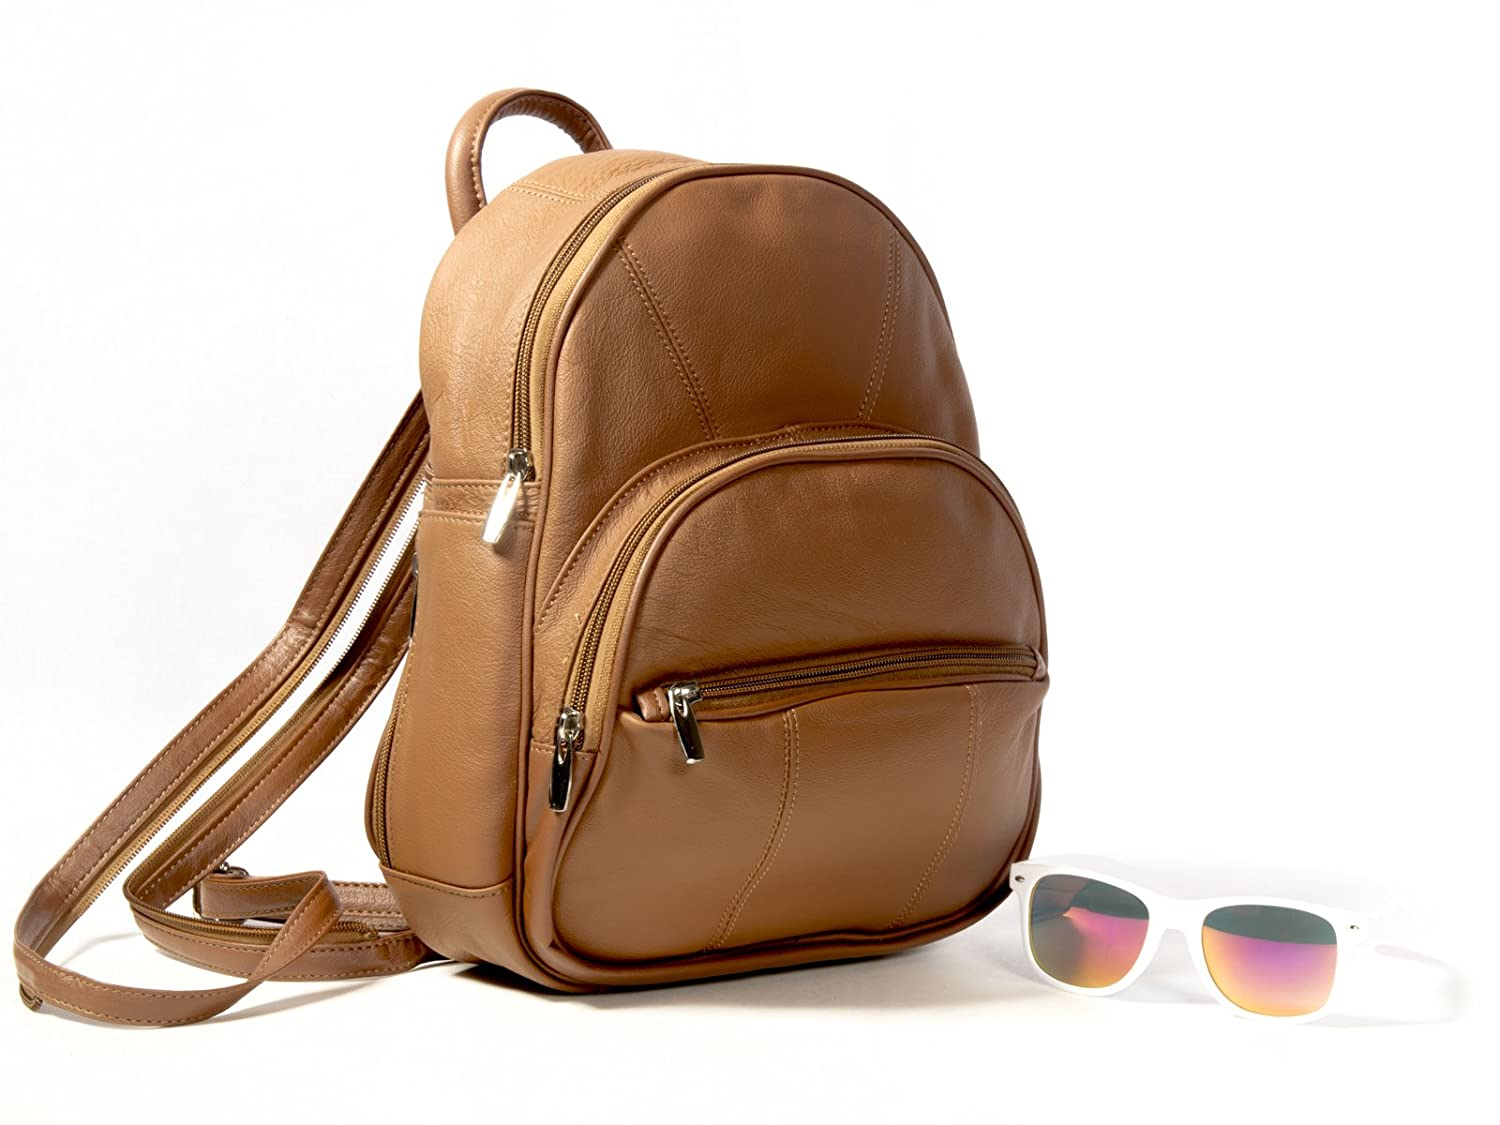 21d47aa8f4 Amazon.com  Goson Leather Backpack Purse Mid Size   Convertible Strap Sling  Bag Organizer  Shoes